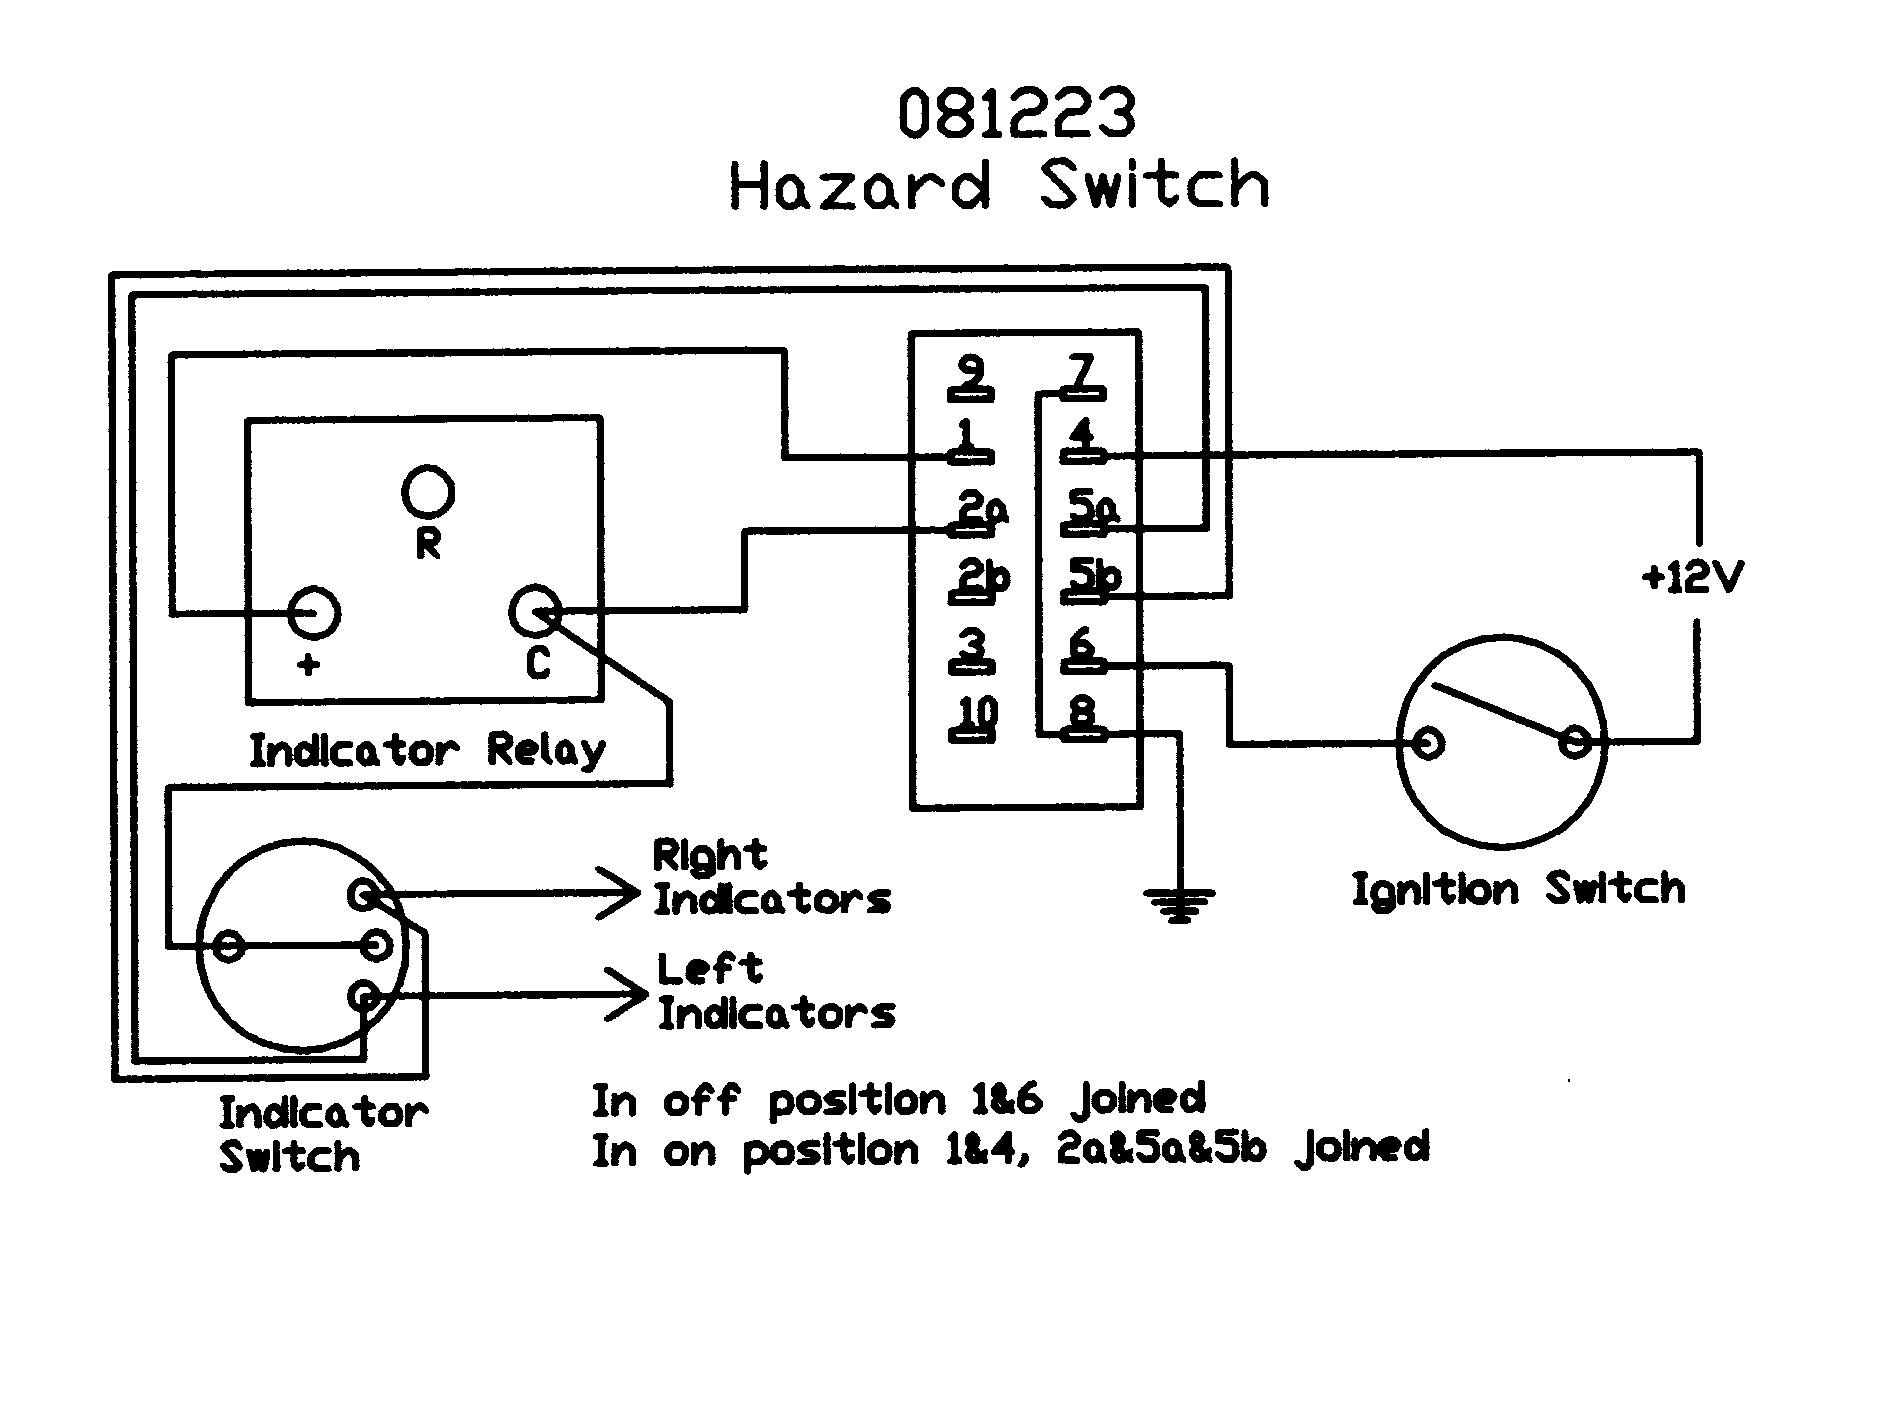 Light Switch Drawing At Free For Personal Use Leviton Combination Two Wiring Diagram 1904x1424 Rocker Hazard